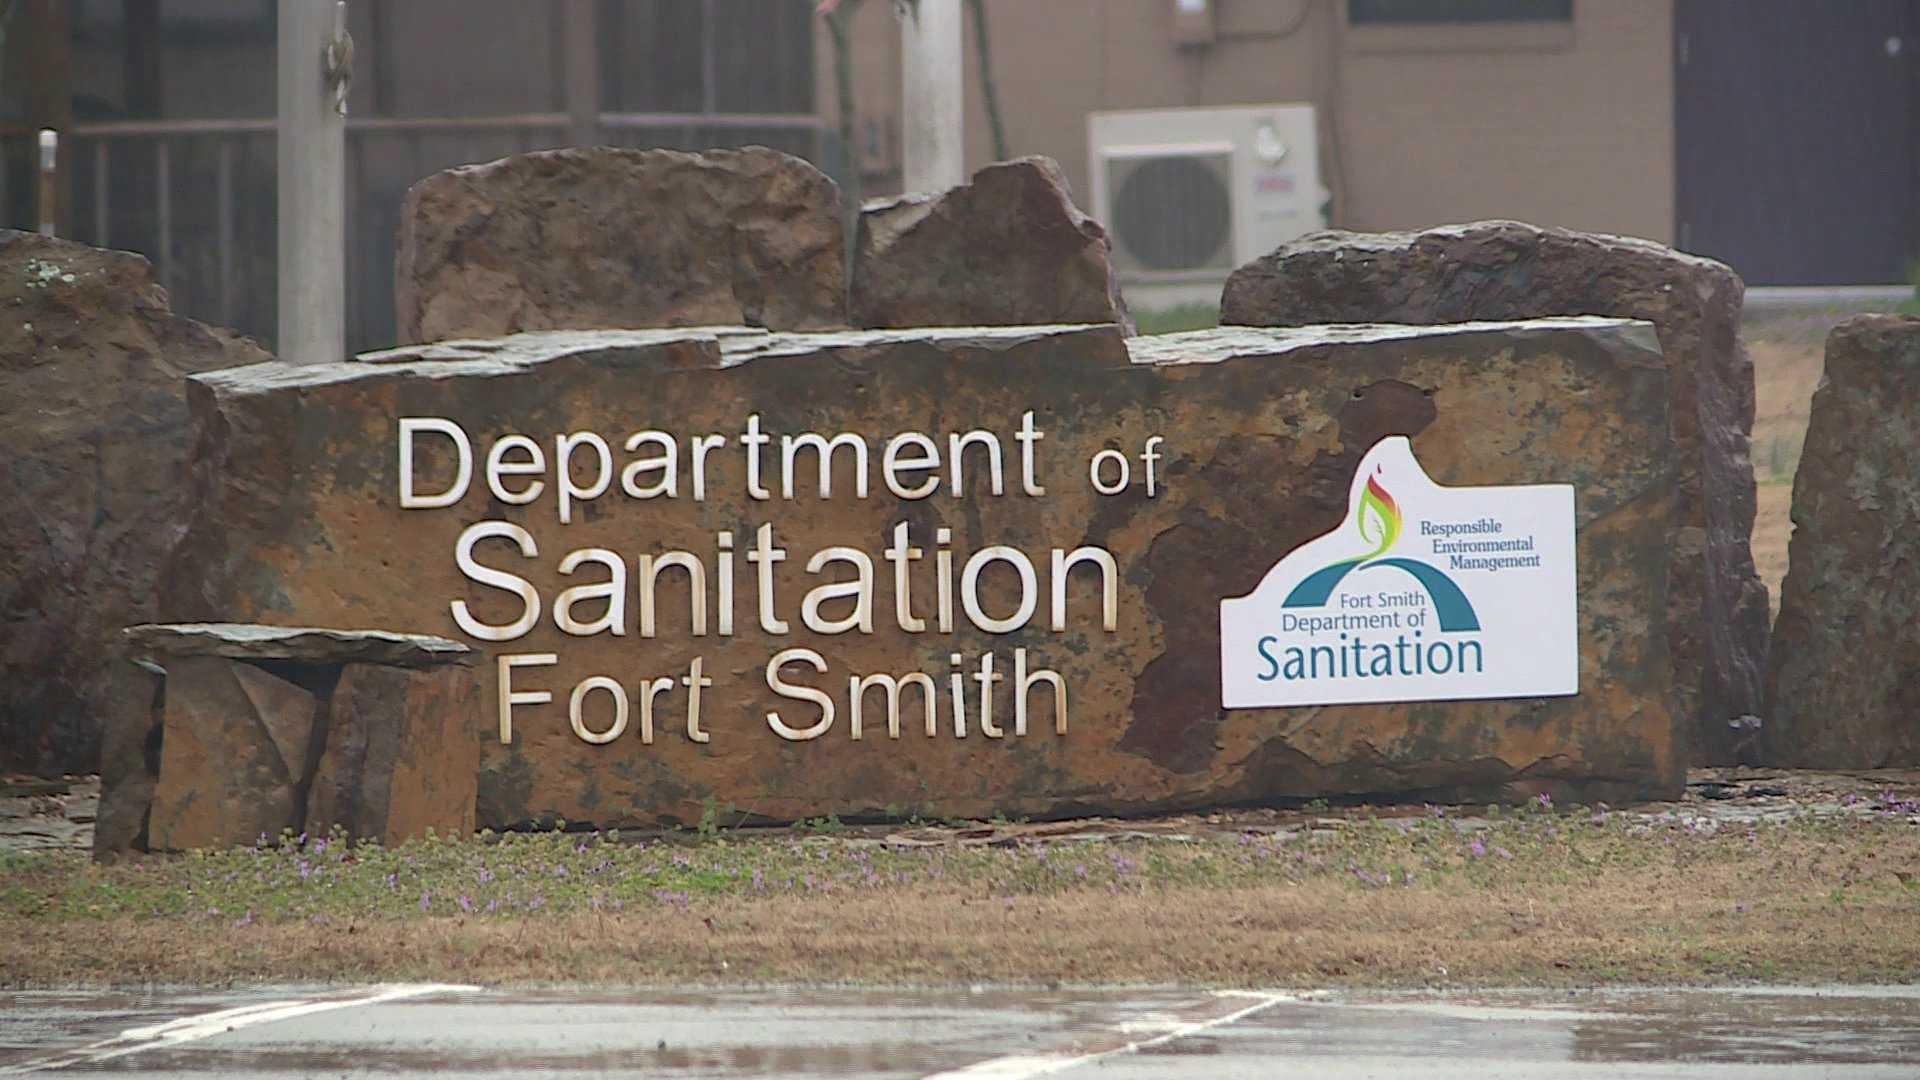 FORT SMITH SANITATION DEPARTMENT.jpg